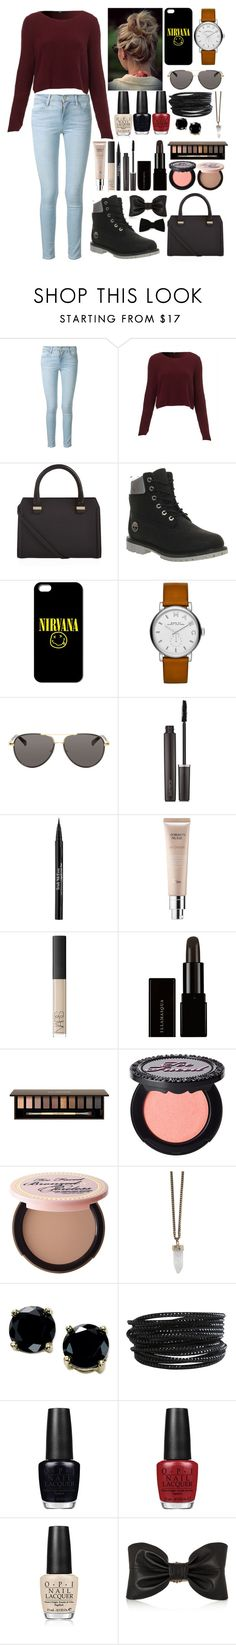 """""""Strong..."""" by directioner1608 ❤ liked on Polyvore featuring Frame Denim, Victoria Beckham, Timberland, Marc by Marc Jacobs, The Row, Laura Mercier, Trish McEvoy, NARS Cosmetics, Clarins and Too Faced Cosmetics"""